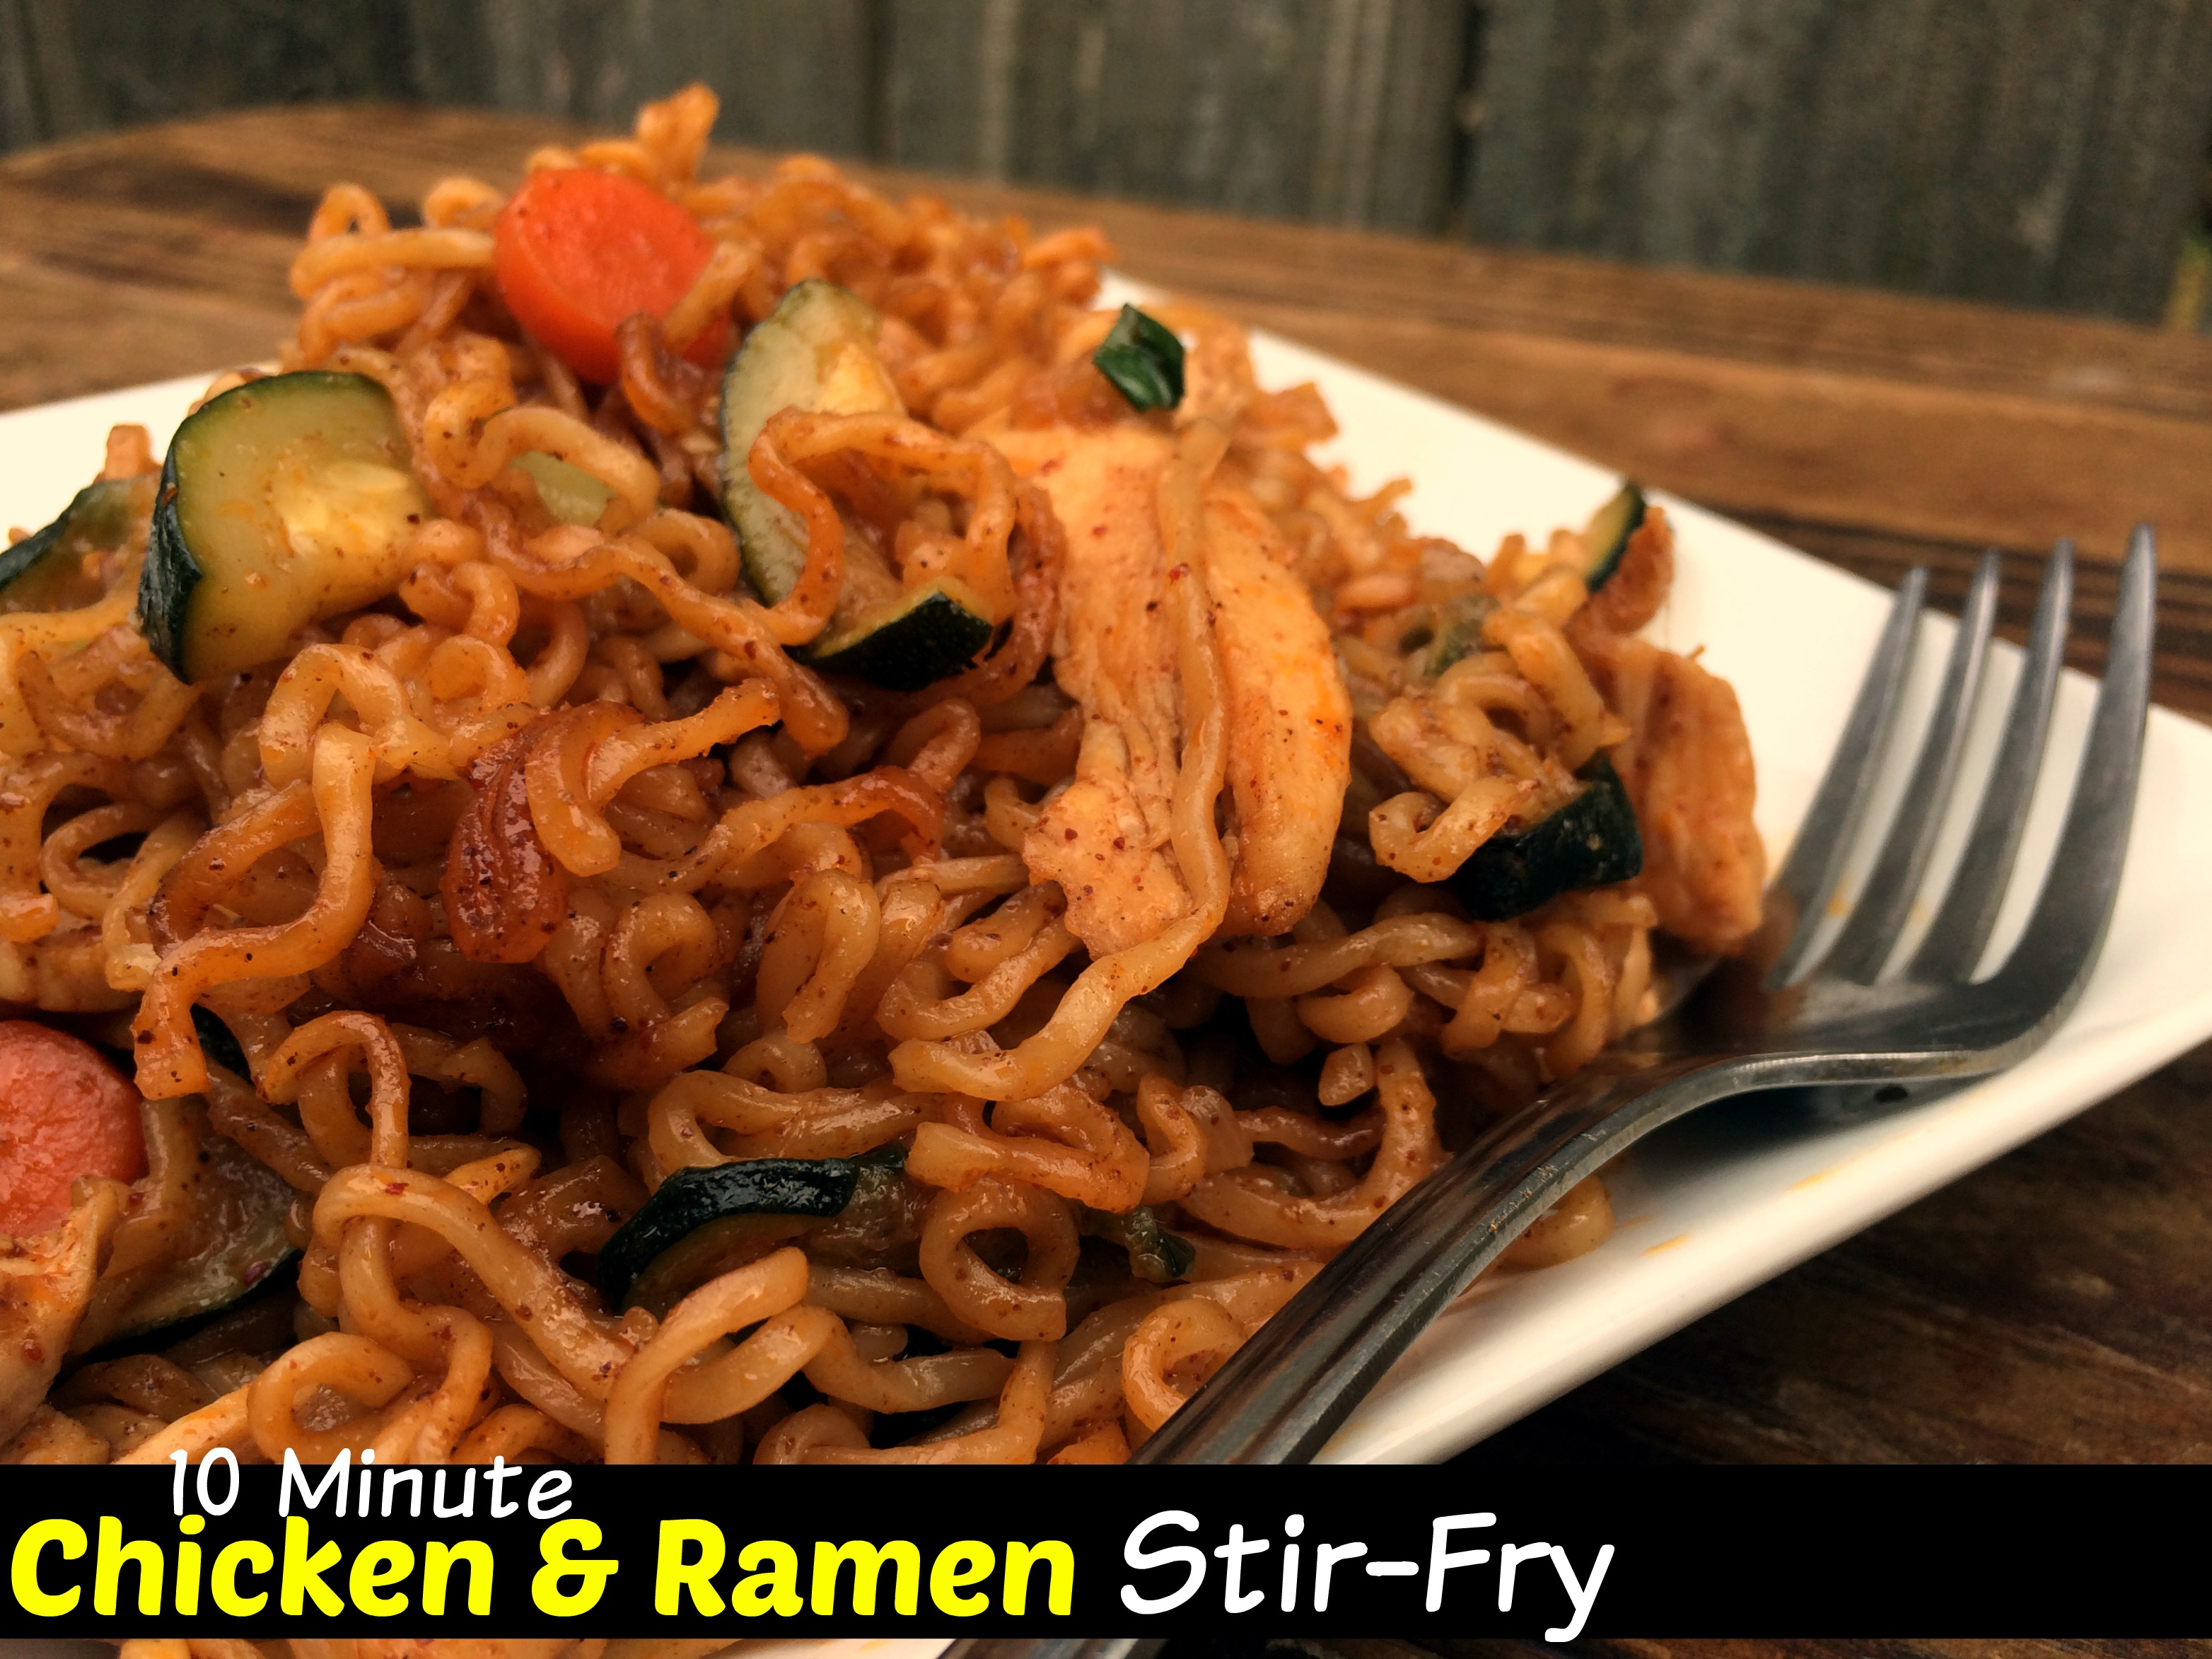 10 Minute Chicken Ramen Stir-Fry